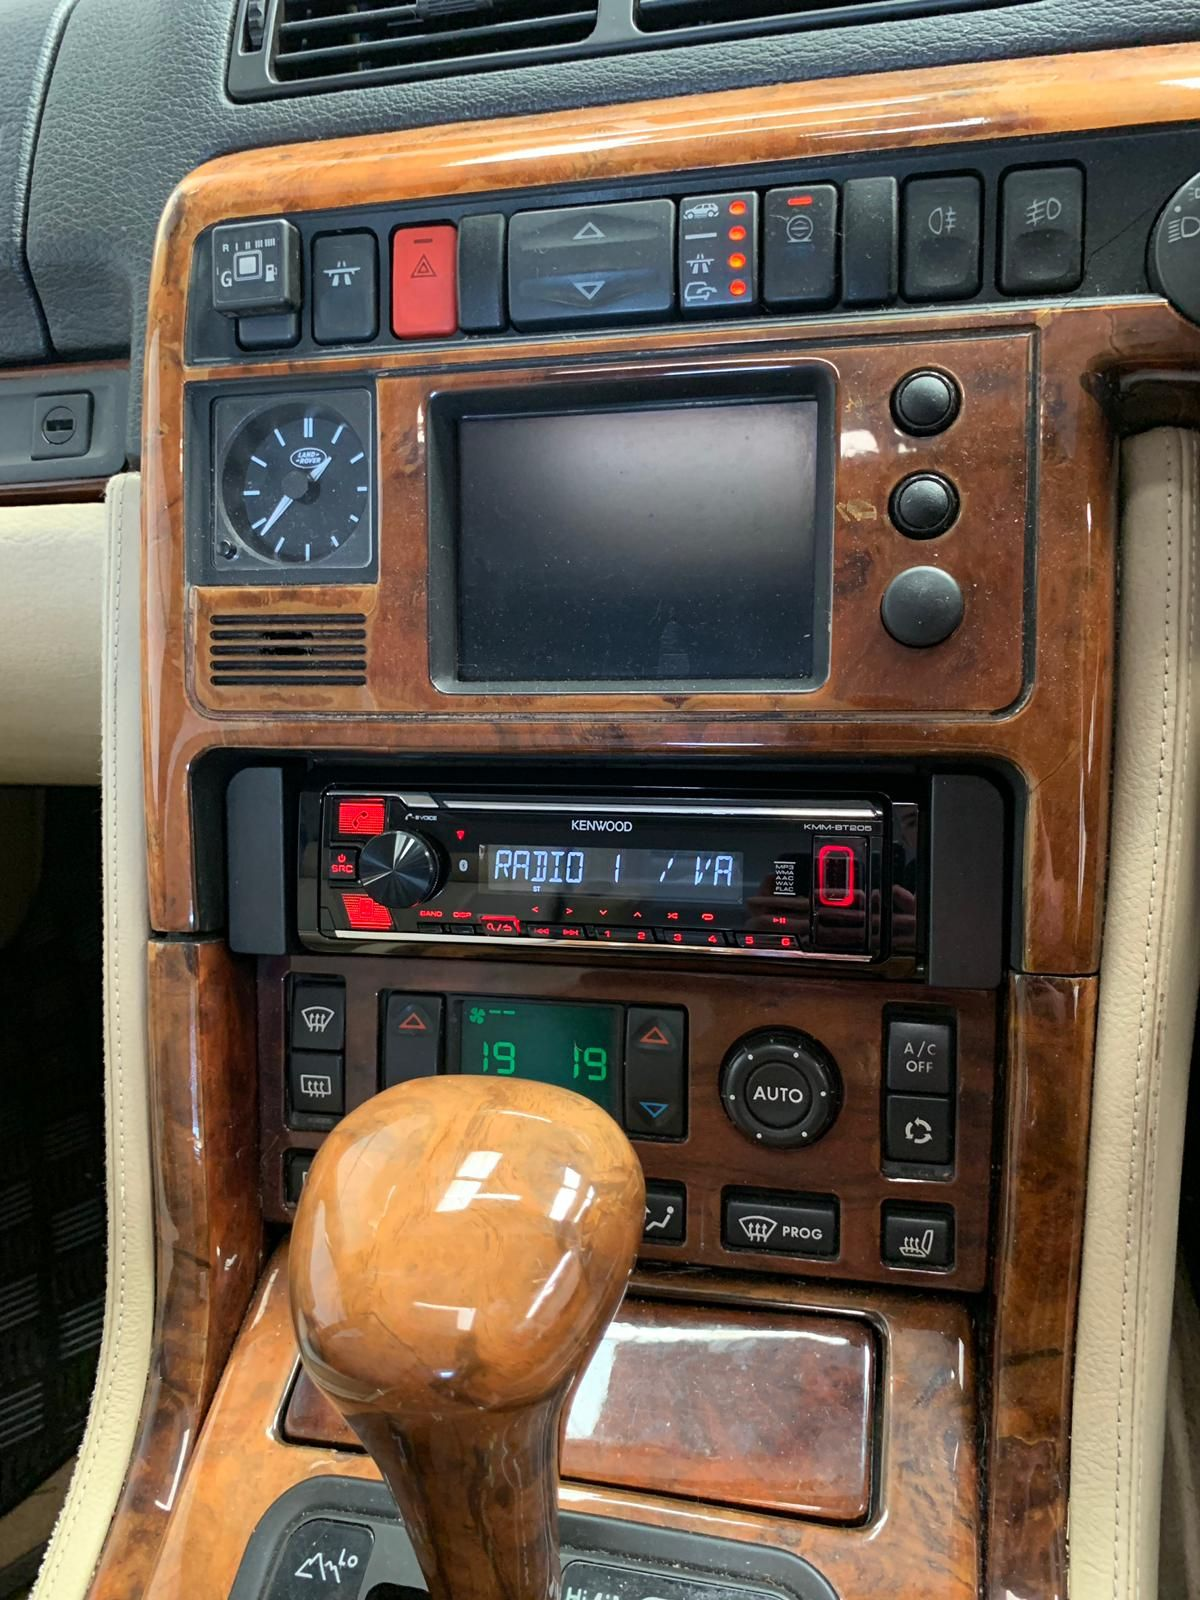 Range Rover autobiography 1997 - new Kenwood radio installed with bluetooth and USB